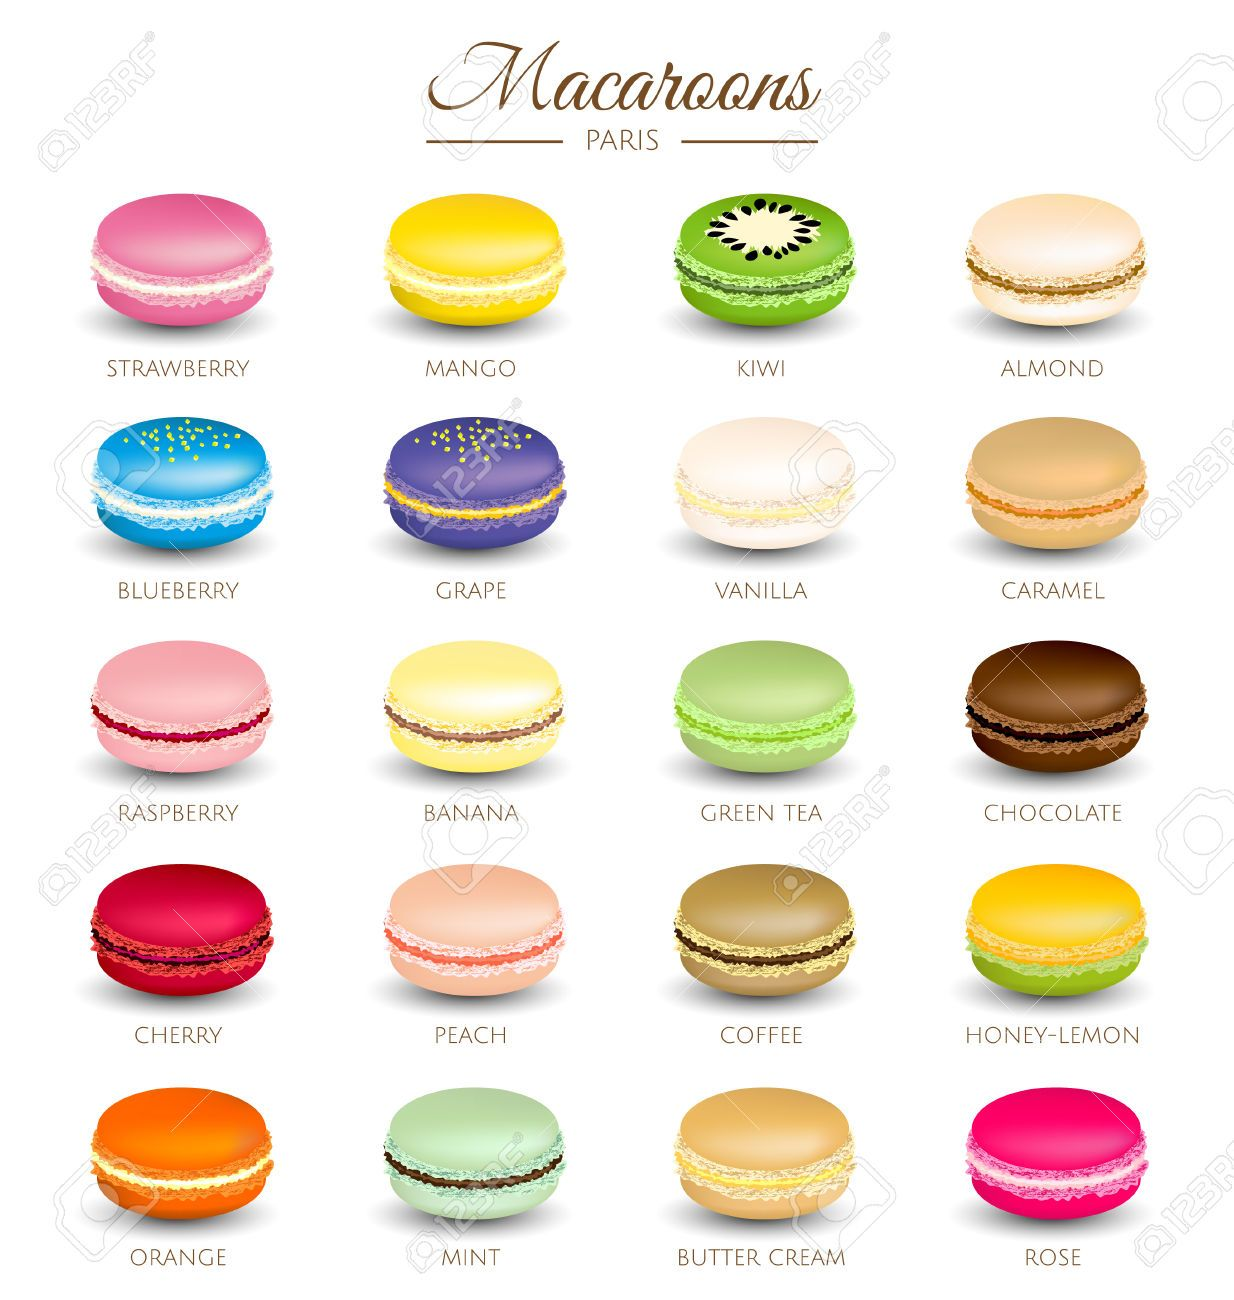 how to make colorful macarons